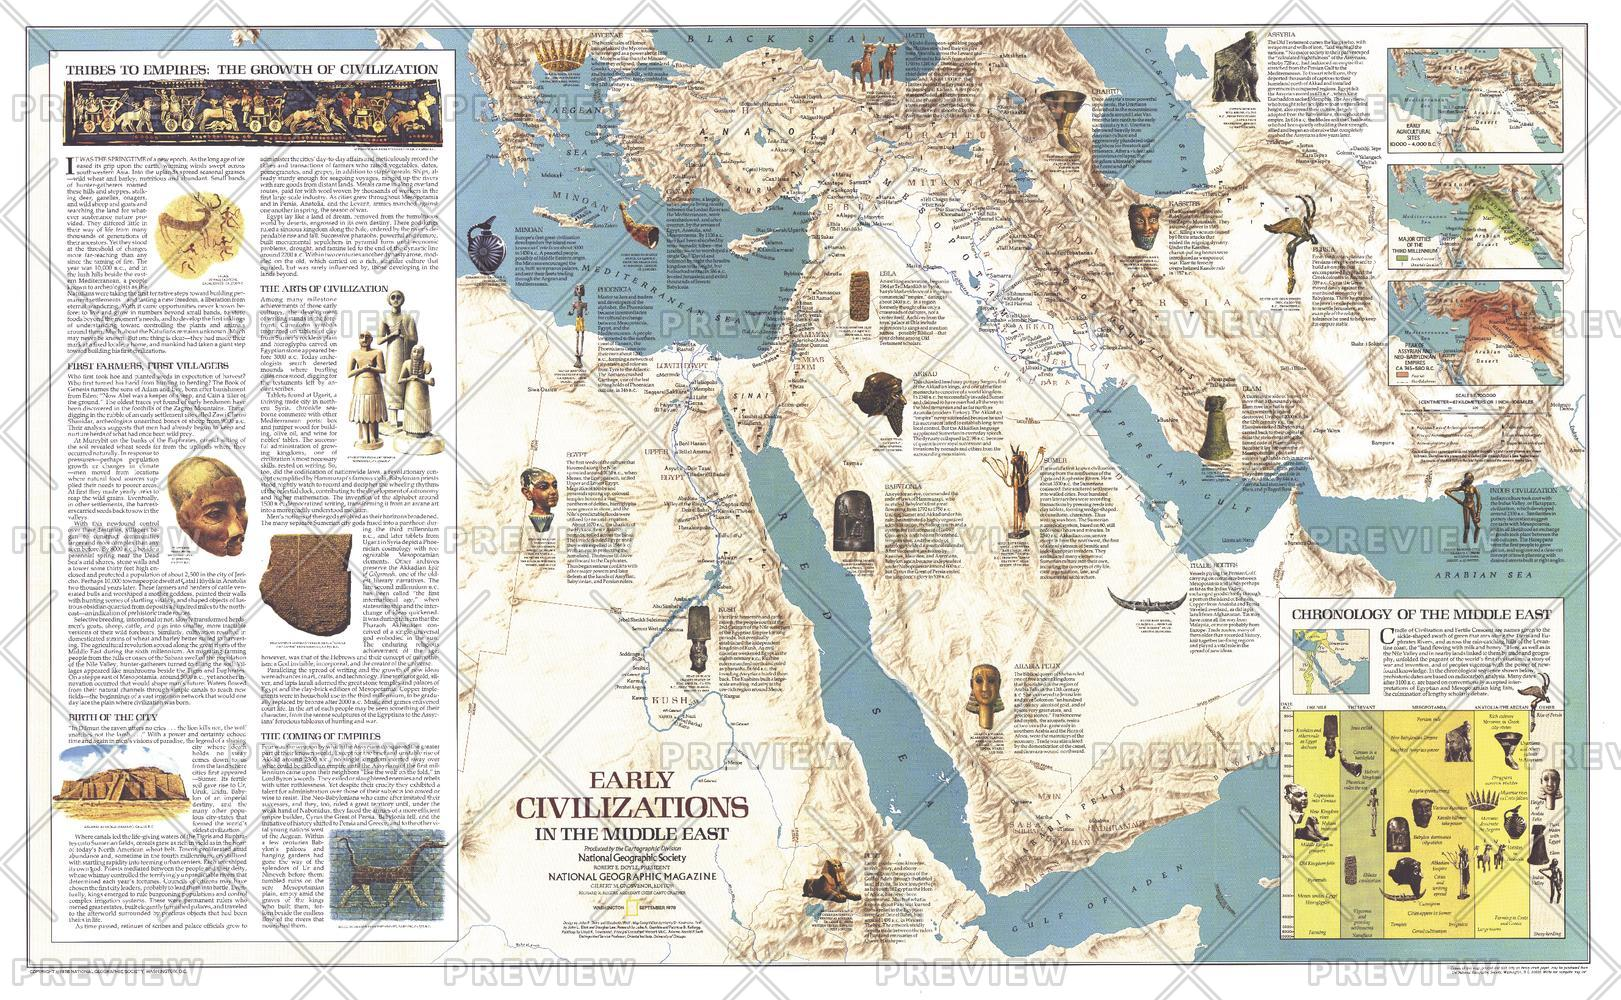 Early Civilizations in the Middle East  -  Published 1978